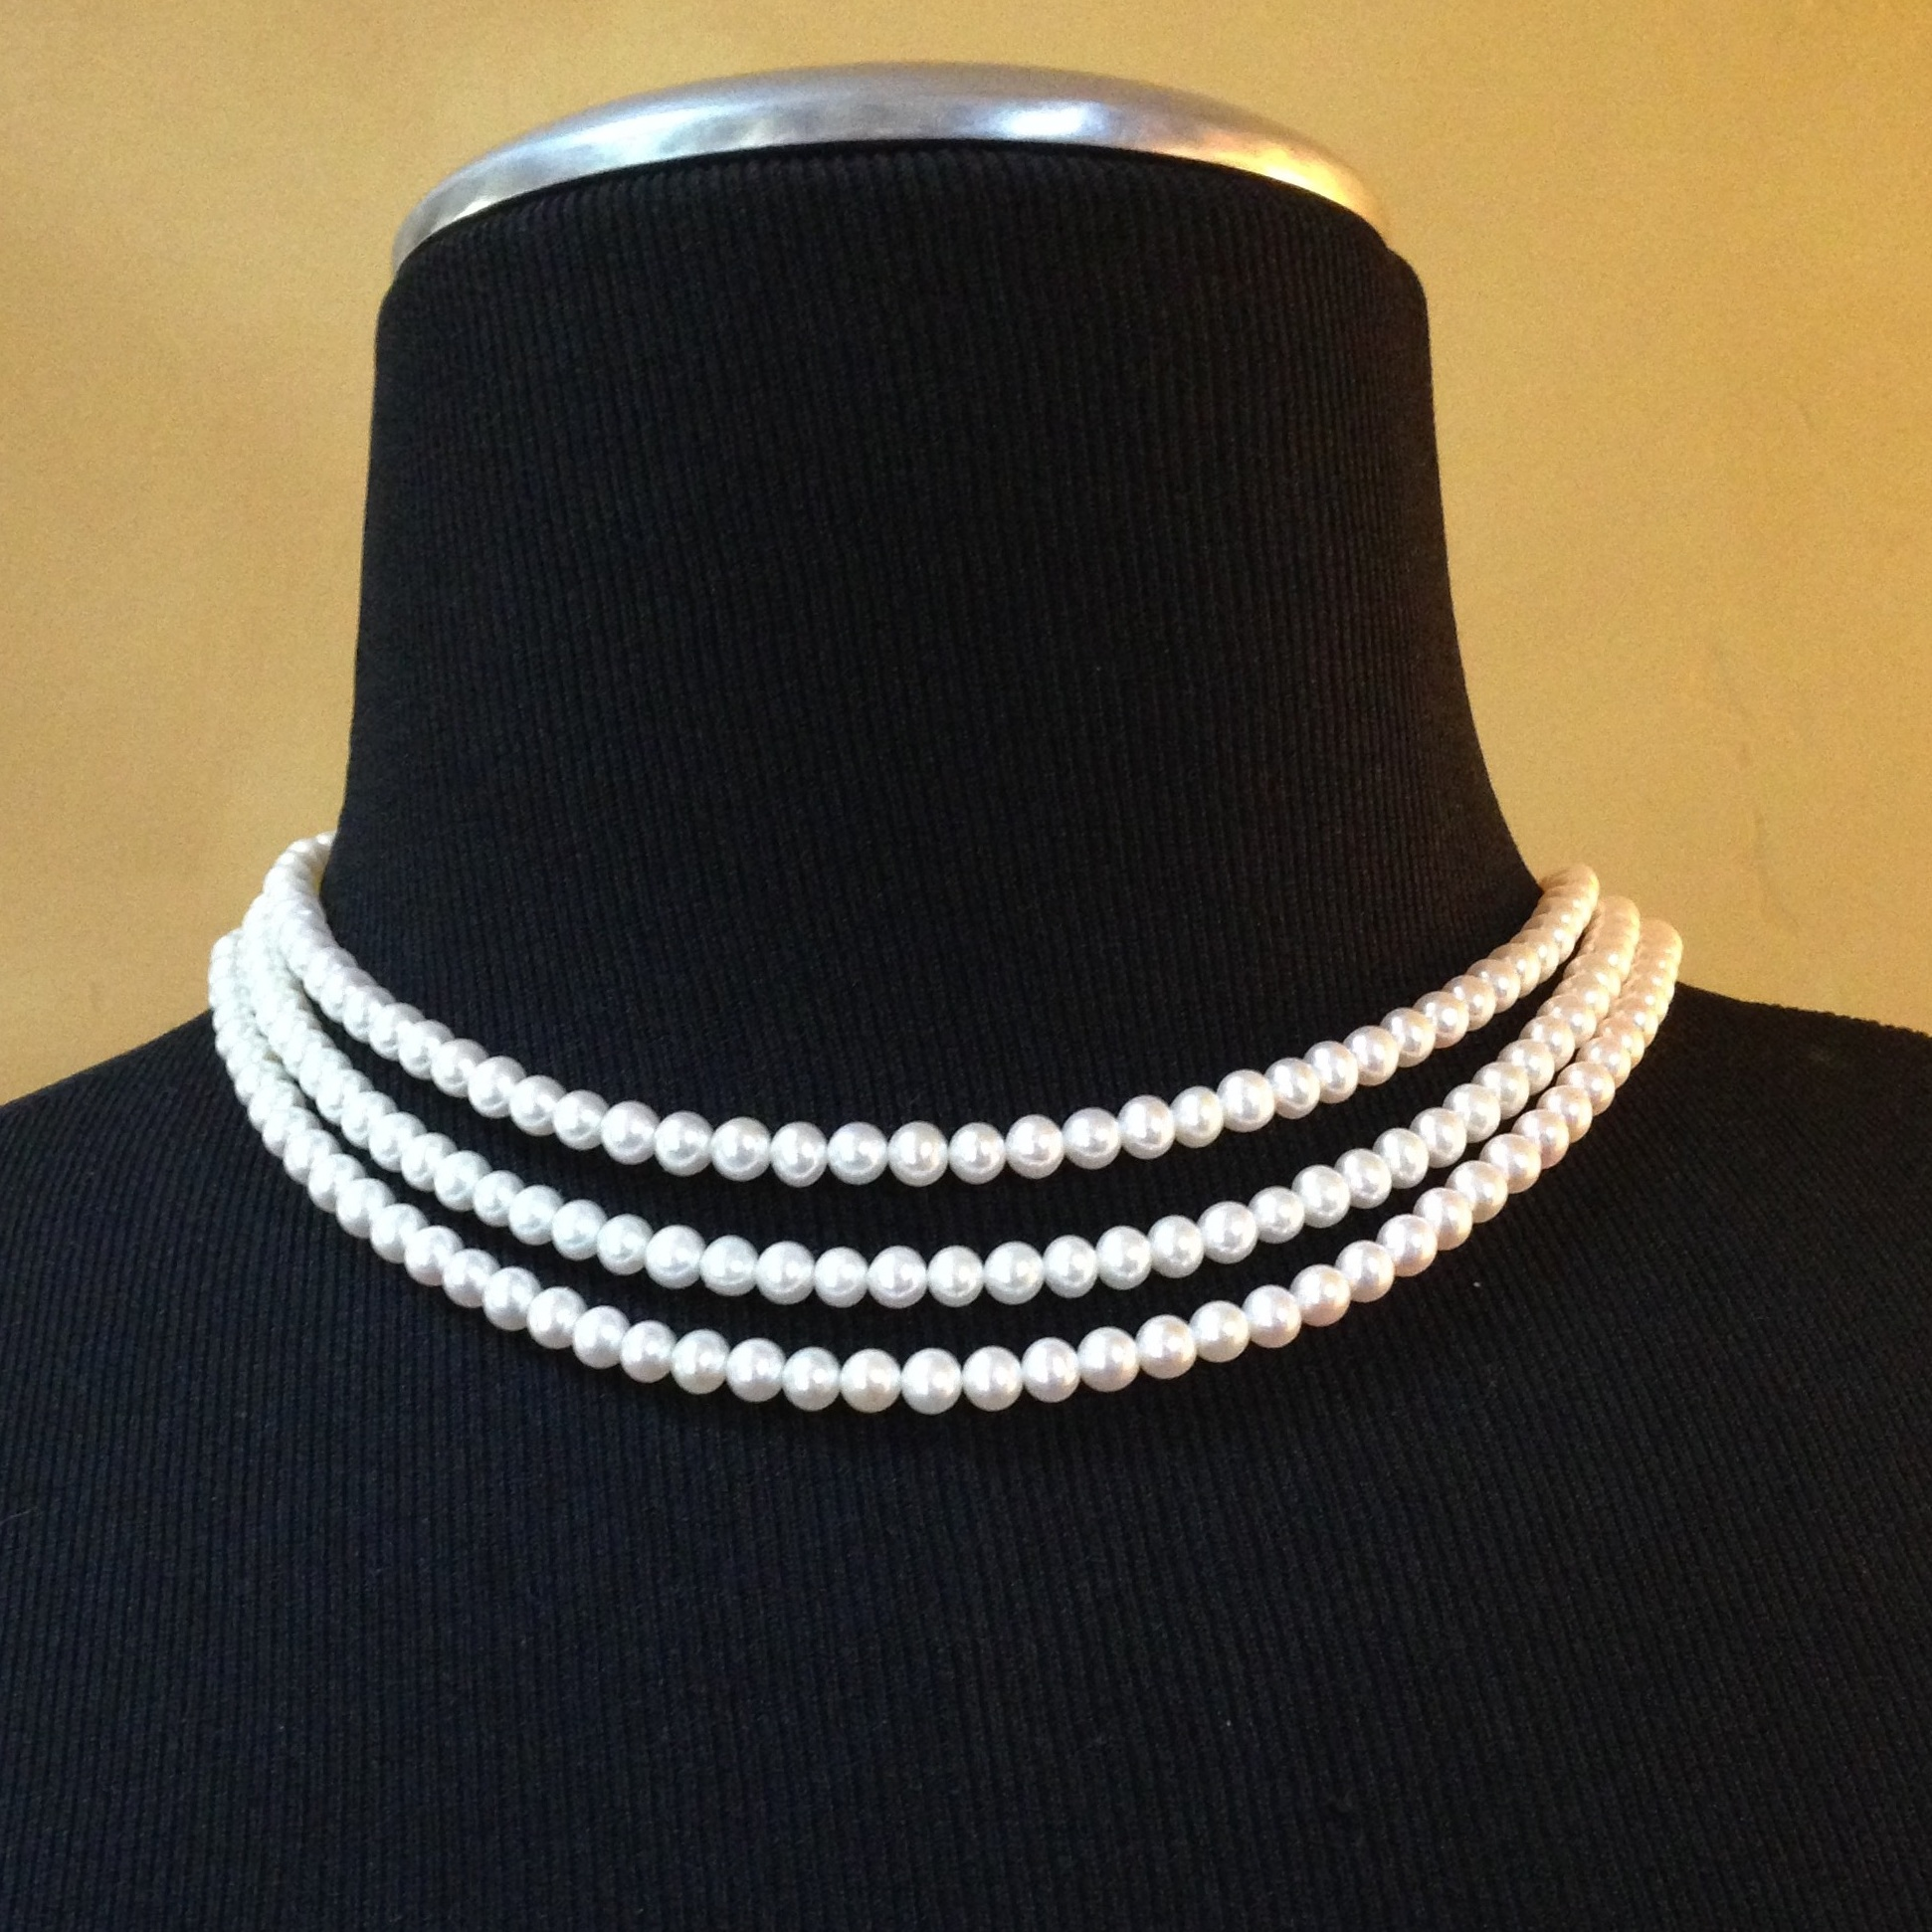 Smaller pearl version of the same classic design - triple strands 5.5mm freshwater pearls - Kathleen Lynagh Designs. Please contact us thru our site for your custom jewelry order.